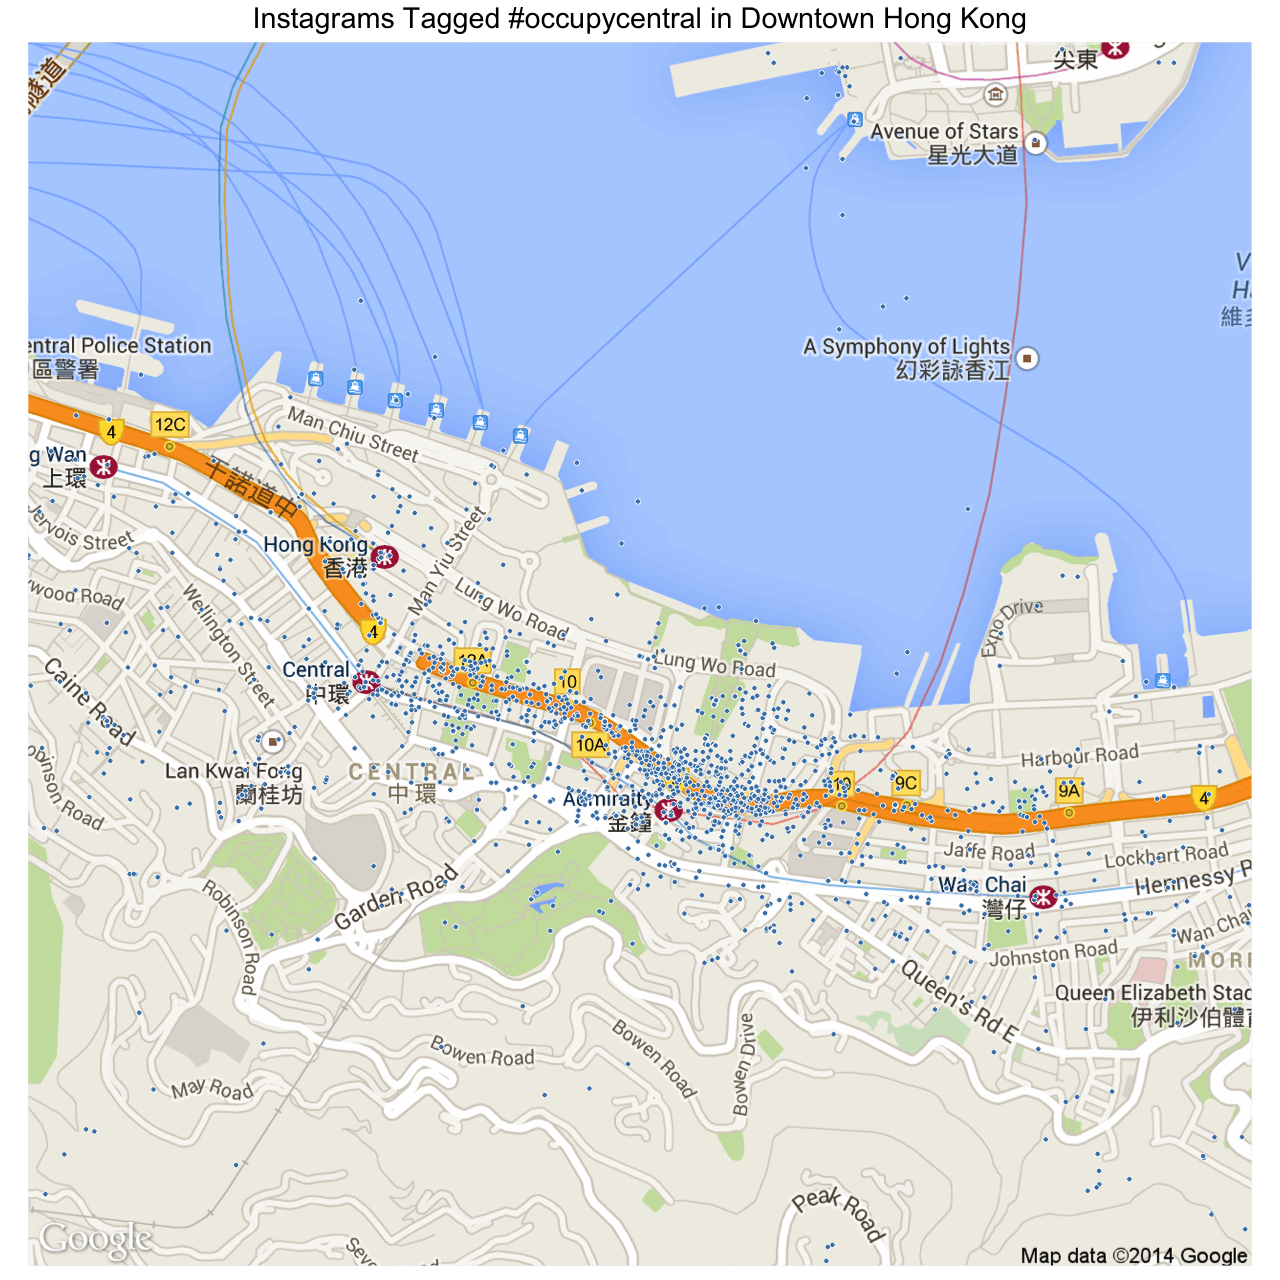 Map of Instagrams tagged #occupycentral